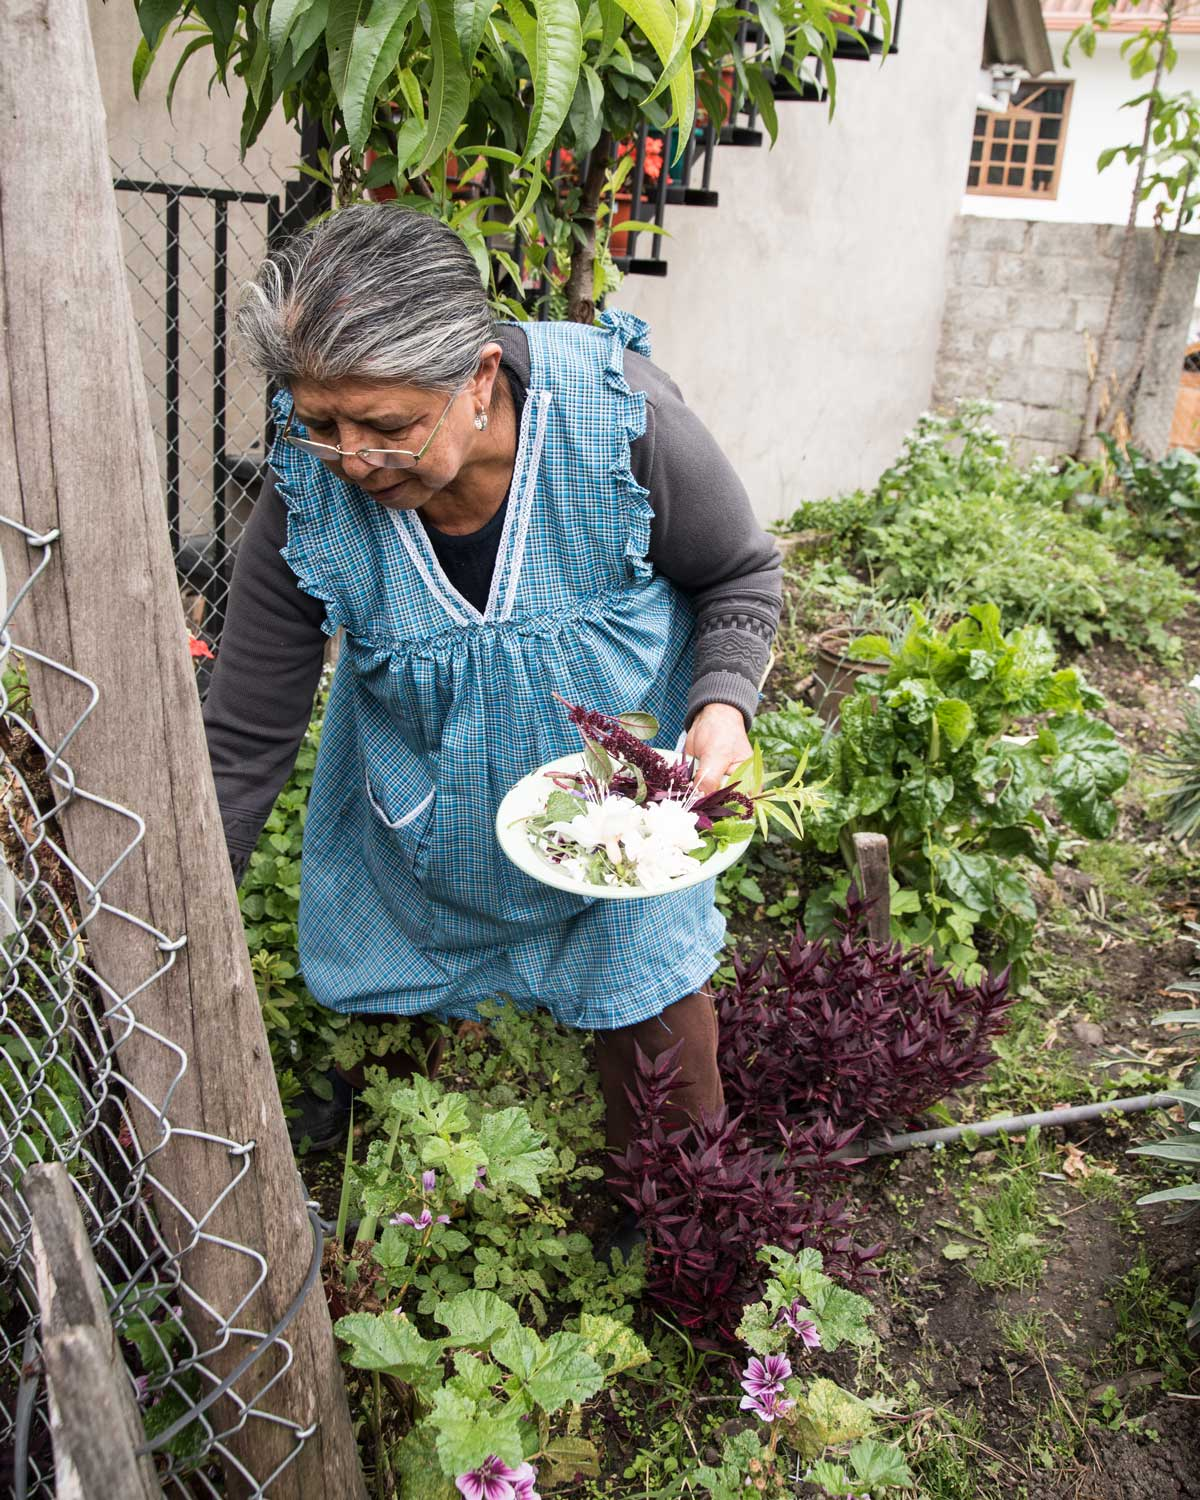 Señora Elmira harvests plants to make horchata, San Bartolome, Ecuador | ©Angela Drake